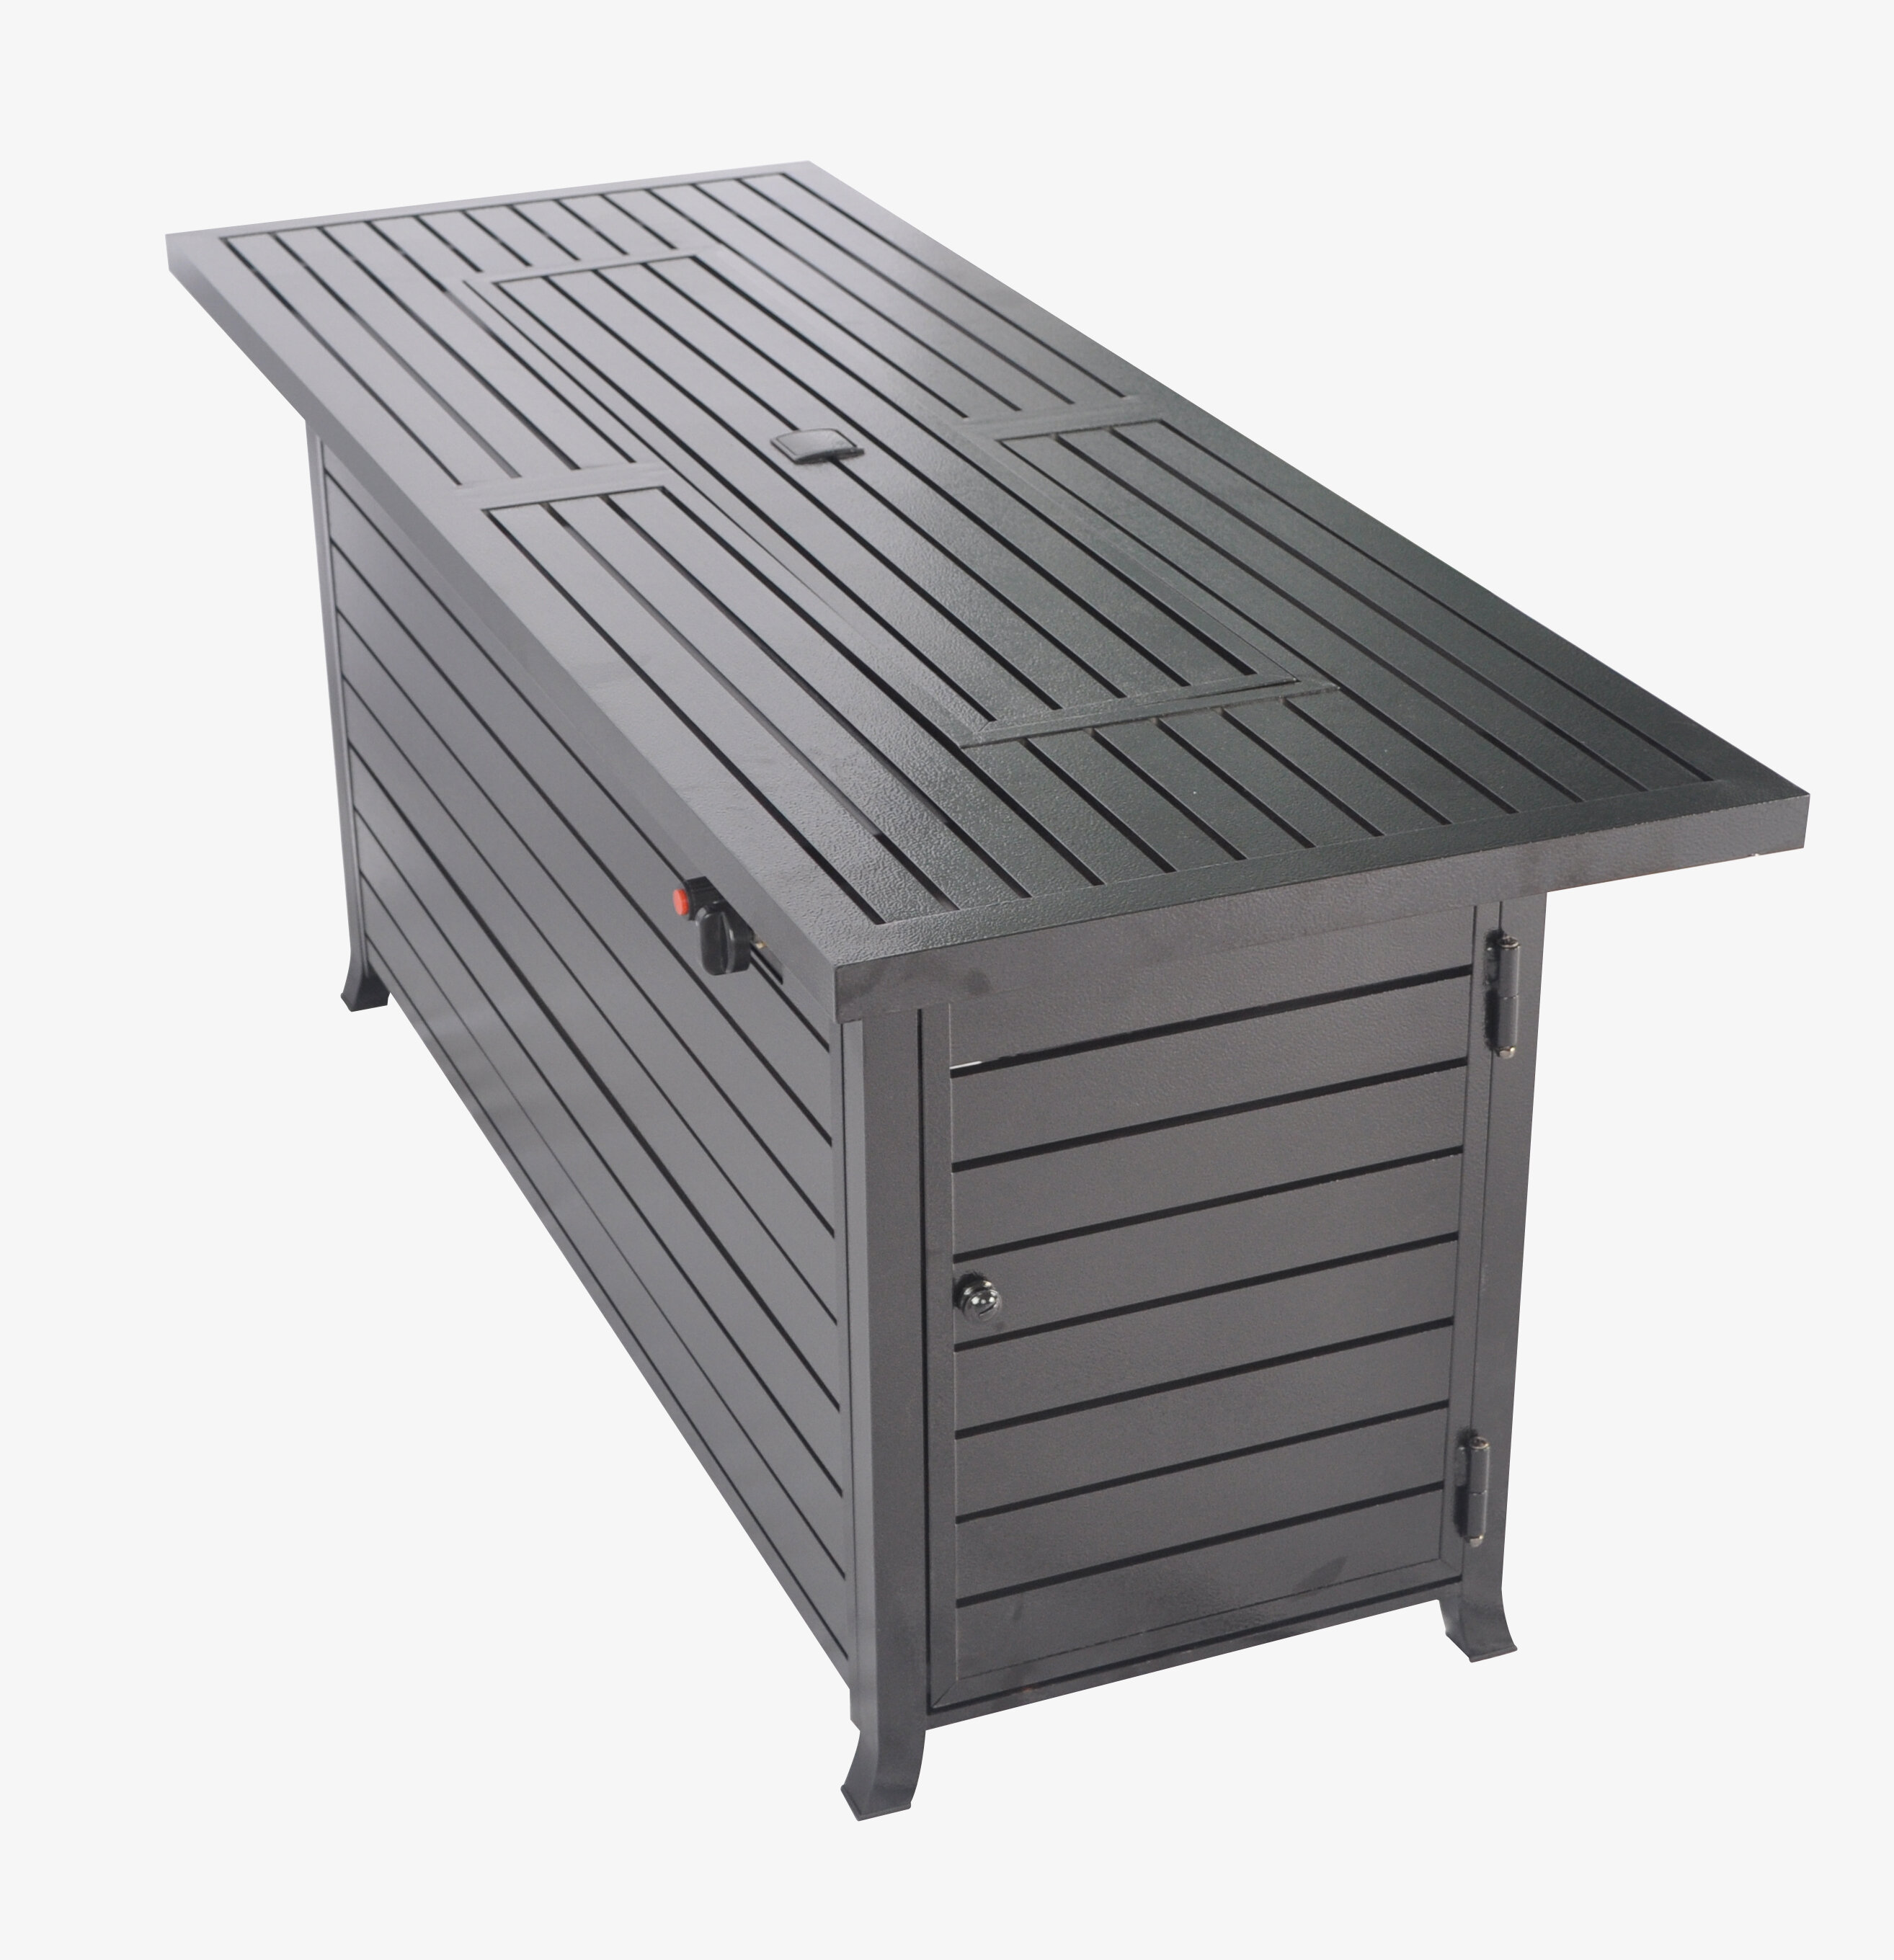 Bar Height Fire Pit Table